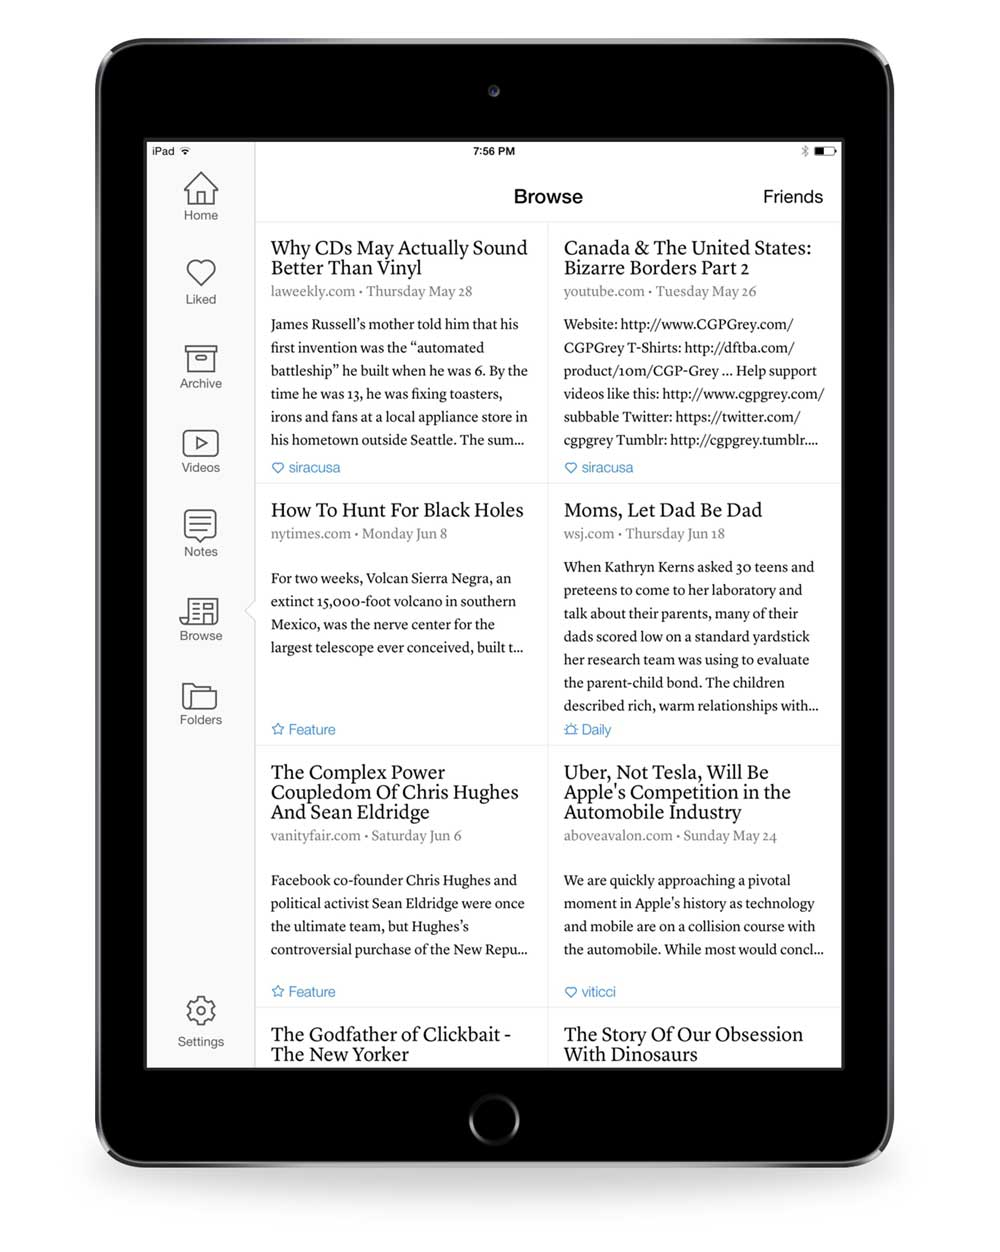 screenshot 7 Instapaper Browse section